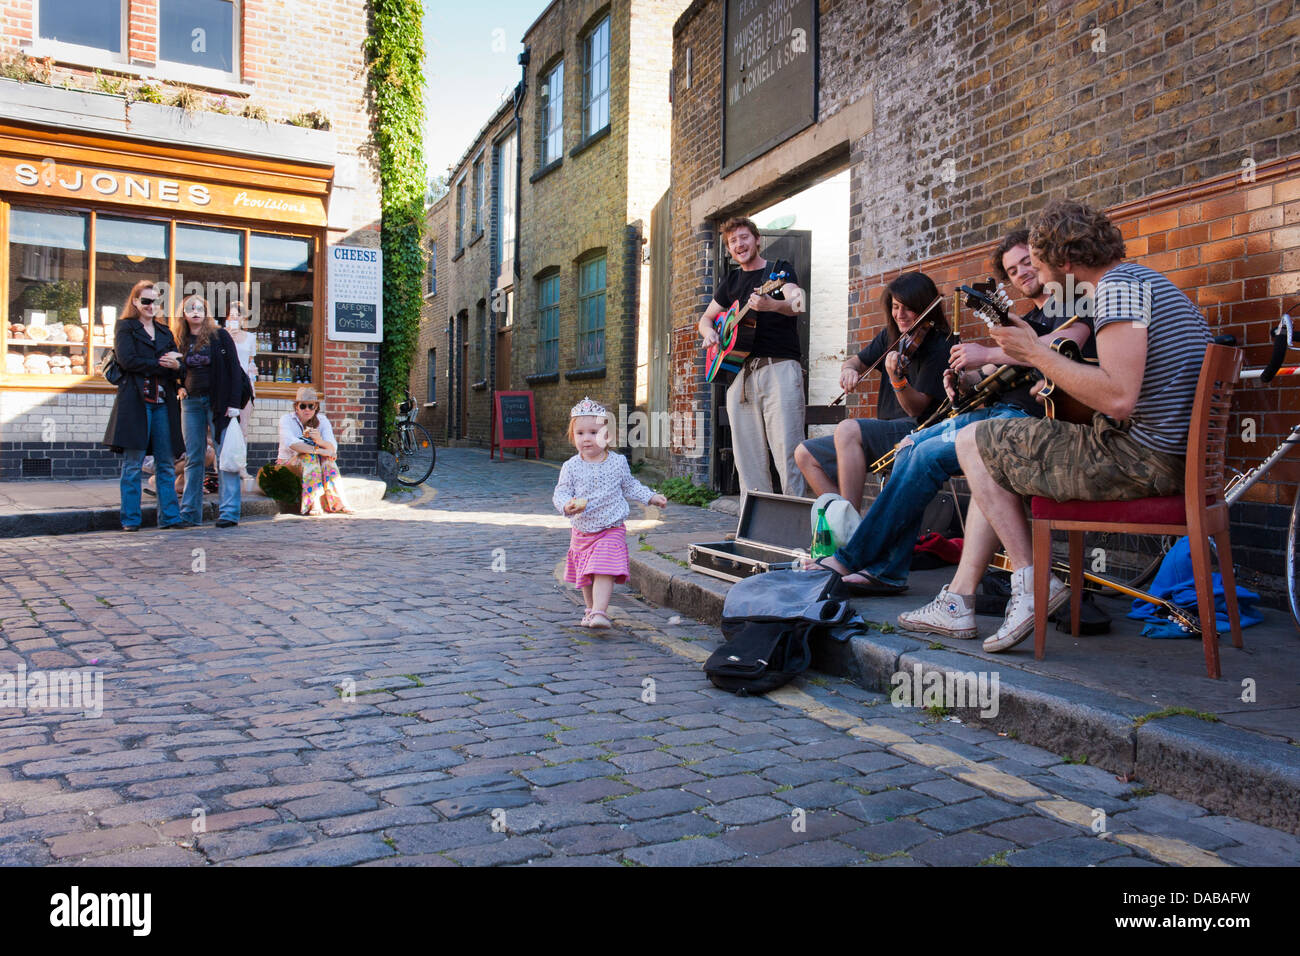 A band of young buskers perform on the streets of London at Columbia Road flower market, London, England, GB, UK. Stock Photo